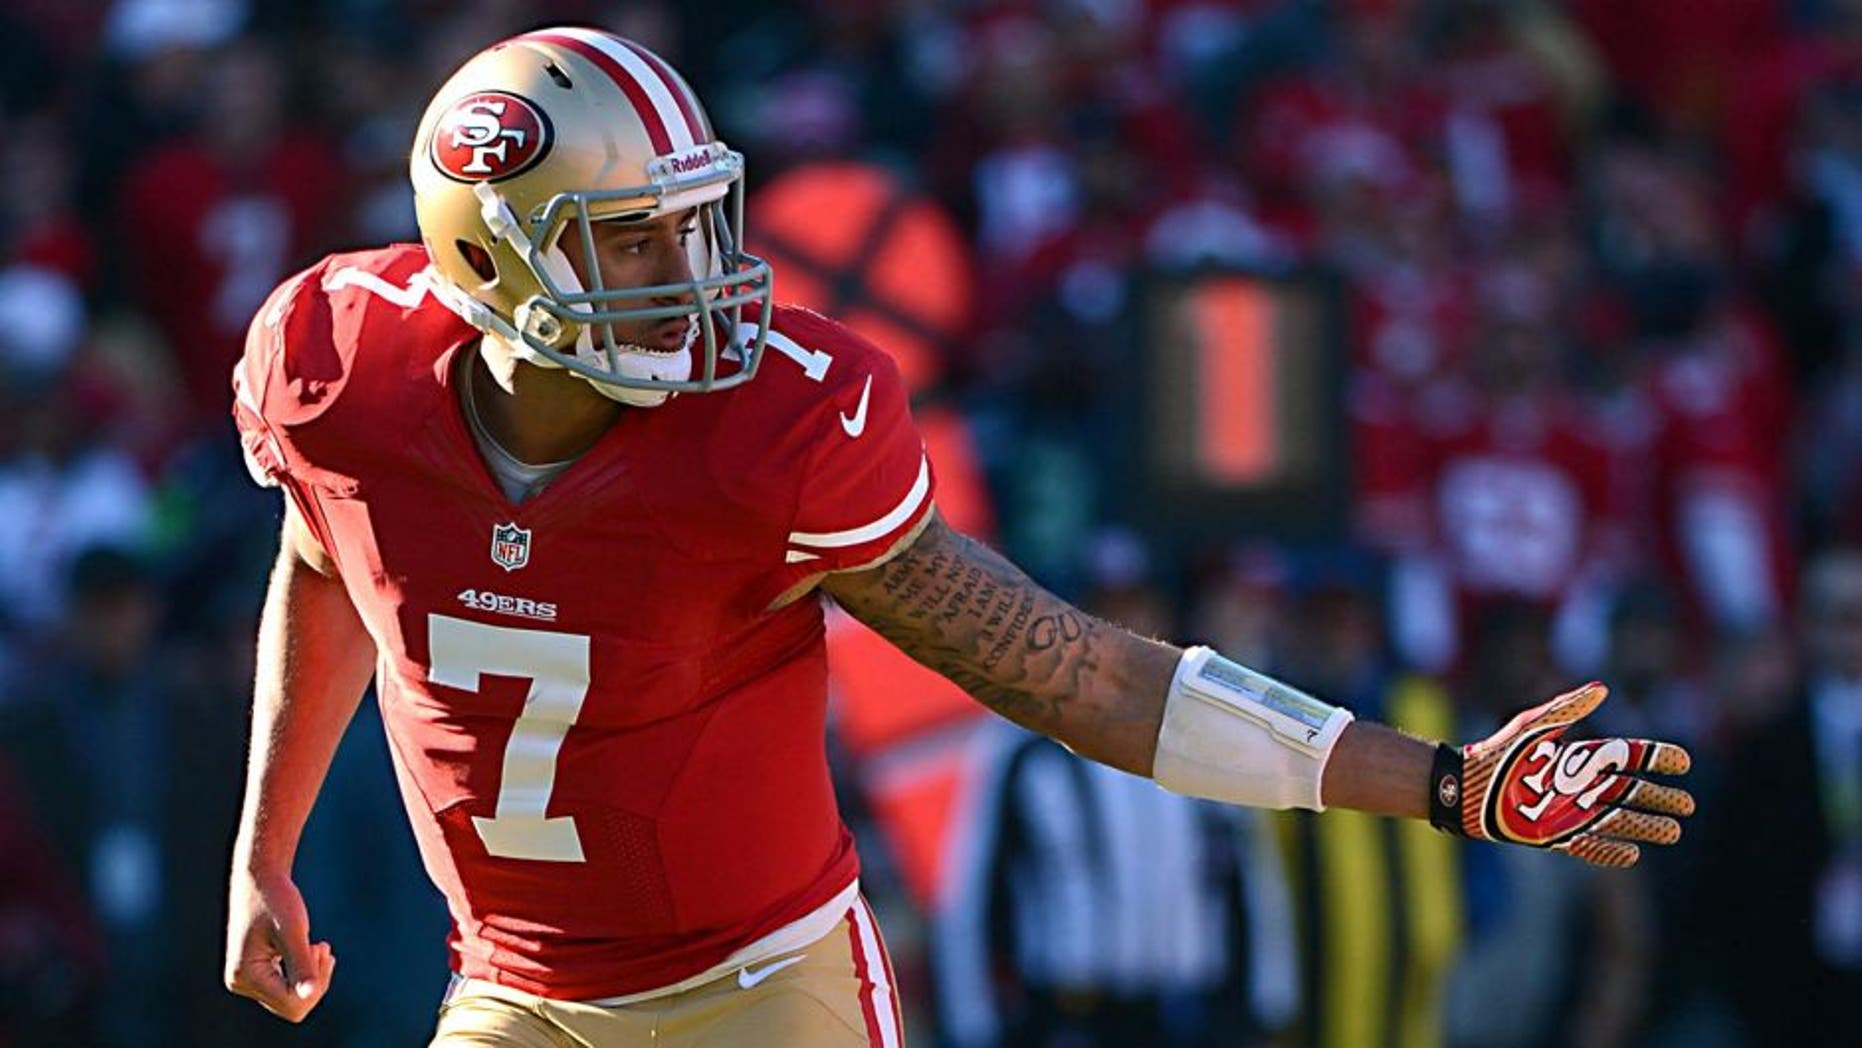 December 8, 2013; San Francisco, CA, USA; San Francisco 49ers quarterback Colin Kaepernick (7) follows through after handing the football off during the second quarter against the Seattle Seahawks at Candlestick Park. The 49ers defeated the Seahawks 19-17. Mandatory Credit: Kyle Terada-USA TODAY Sports